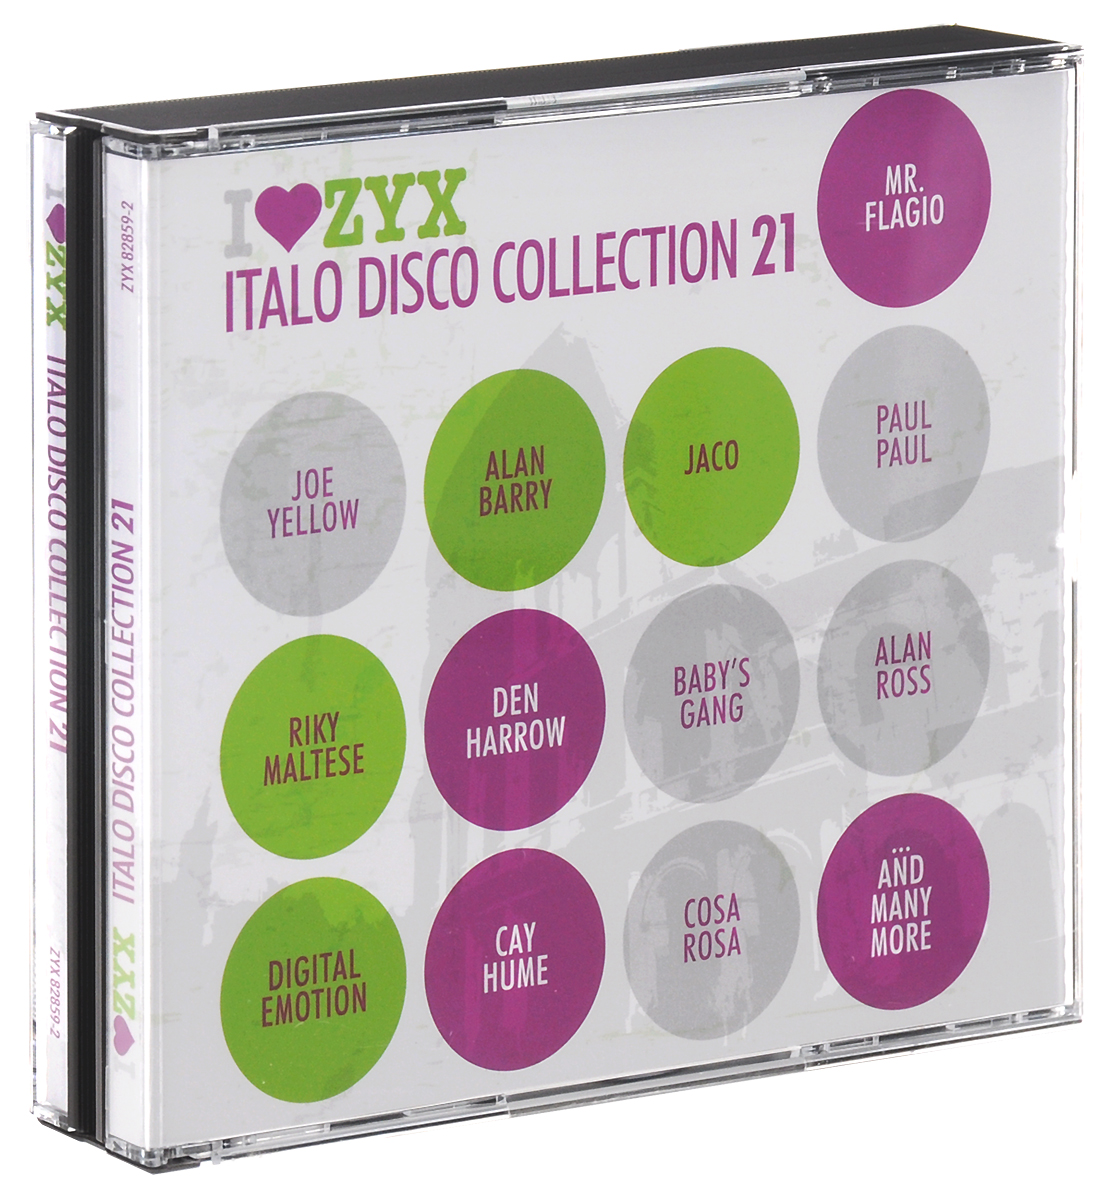 Флагио Мистер,Scotch,Дэн Хэрроу,Алан Барри Zyx Italo Disco Collection 21 (3 CD) цена и фото